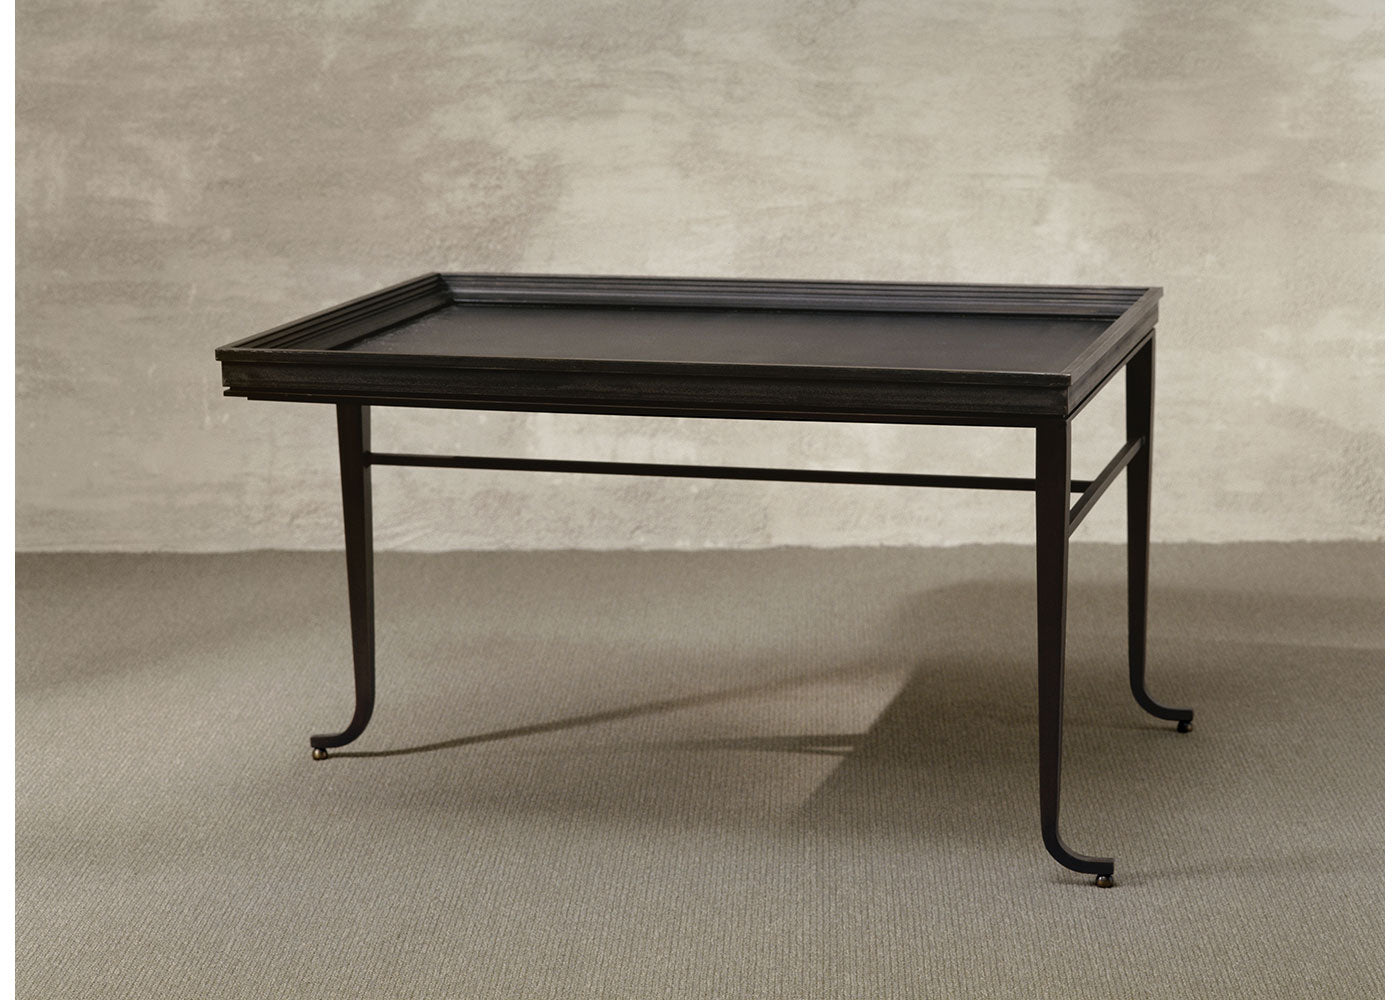 Three-Legged Coffee Table™ Steel Top